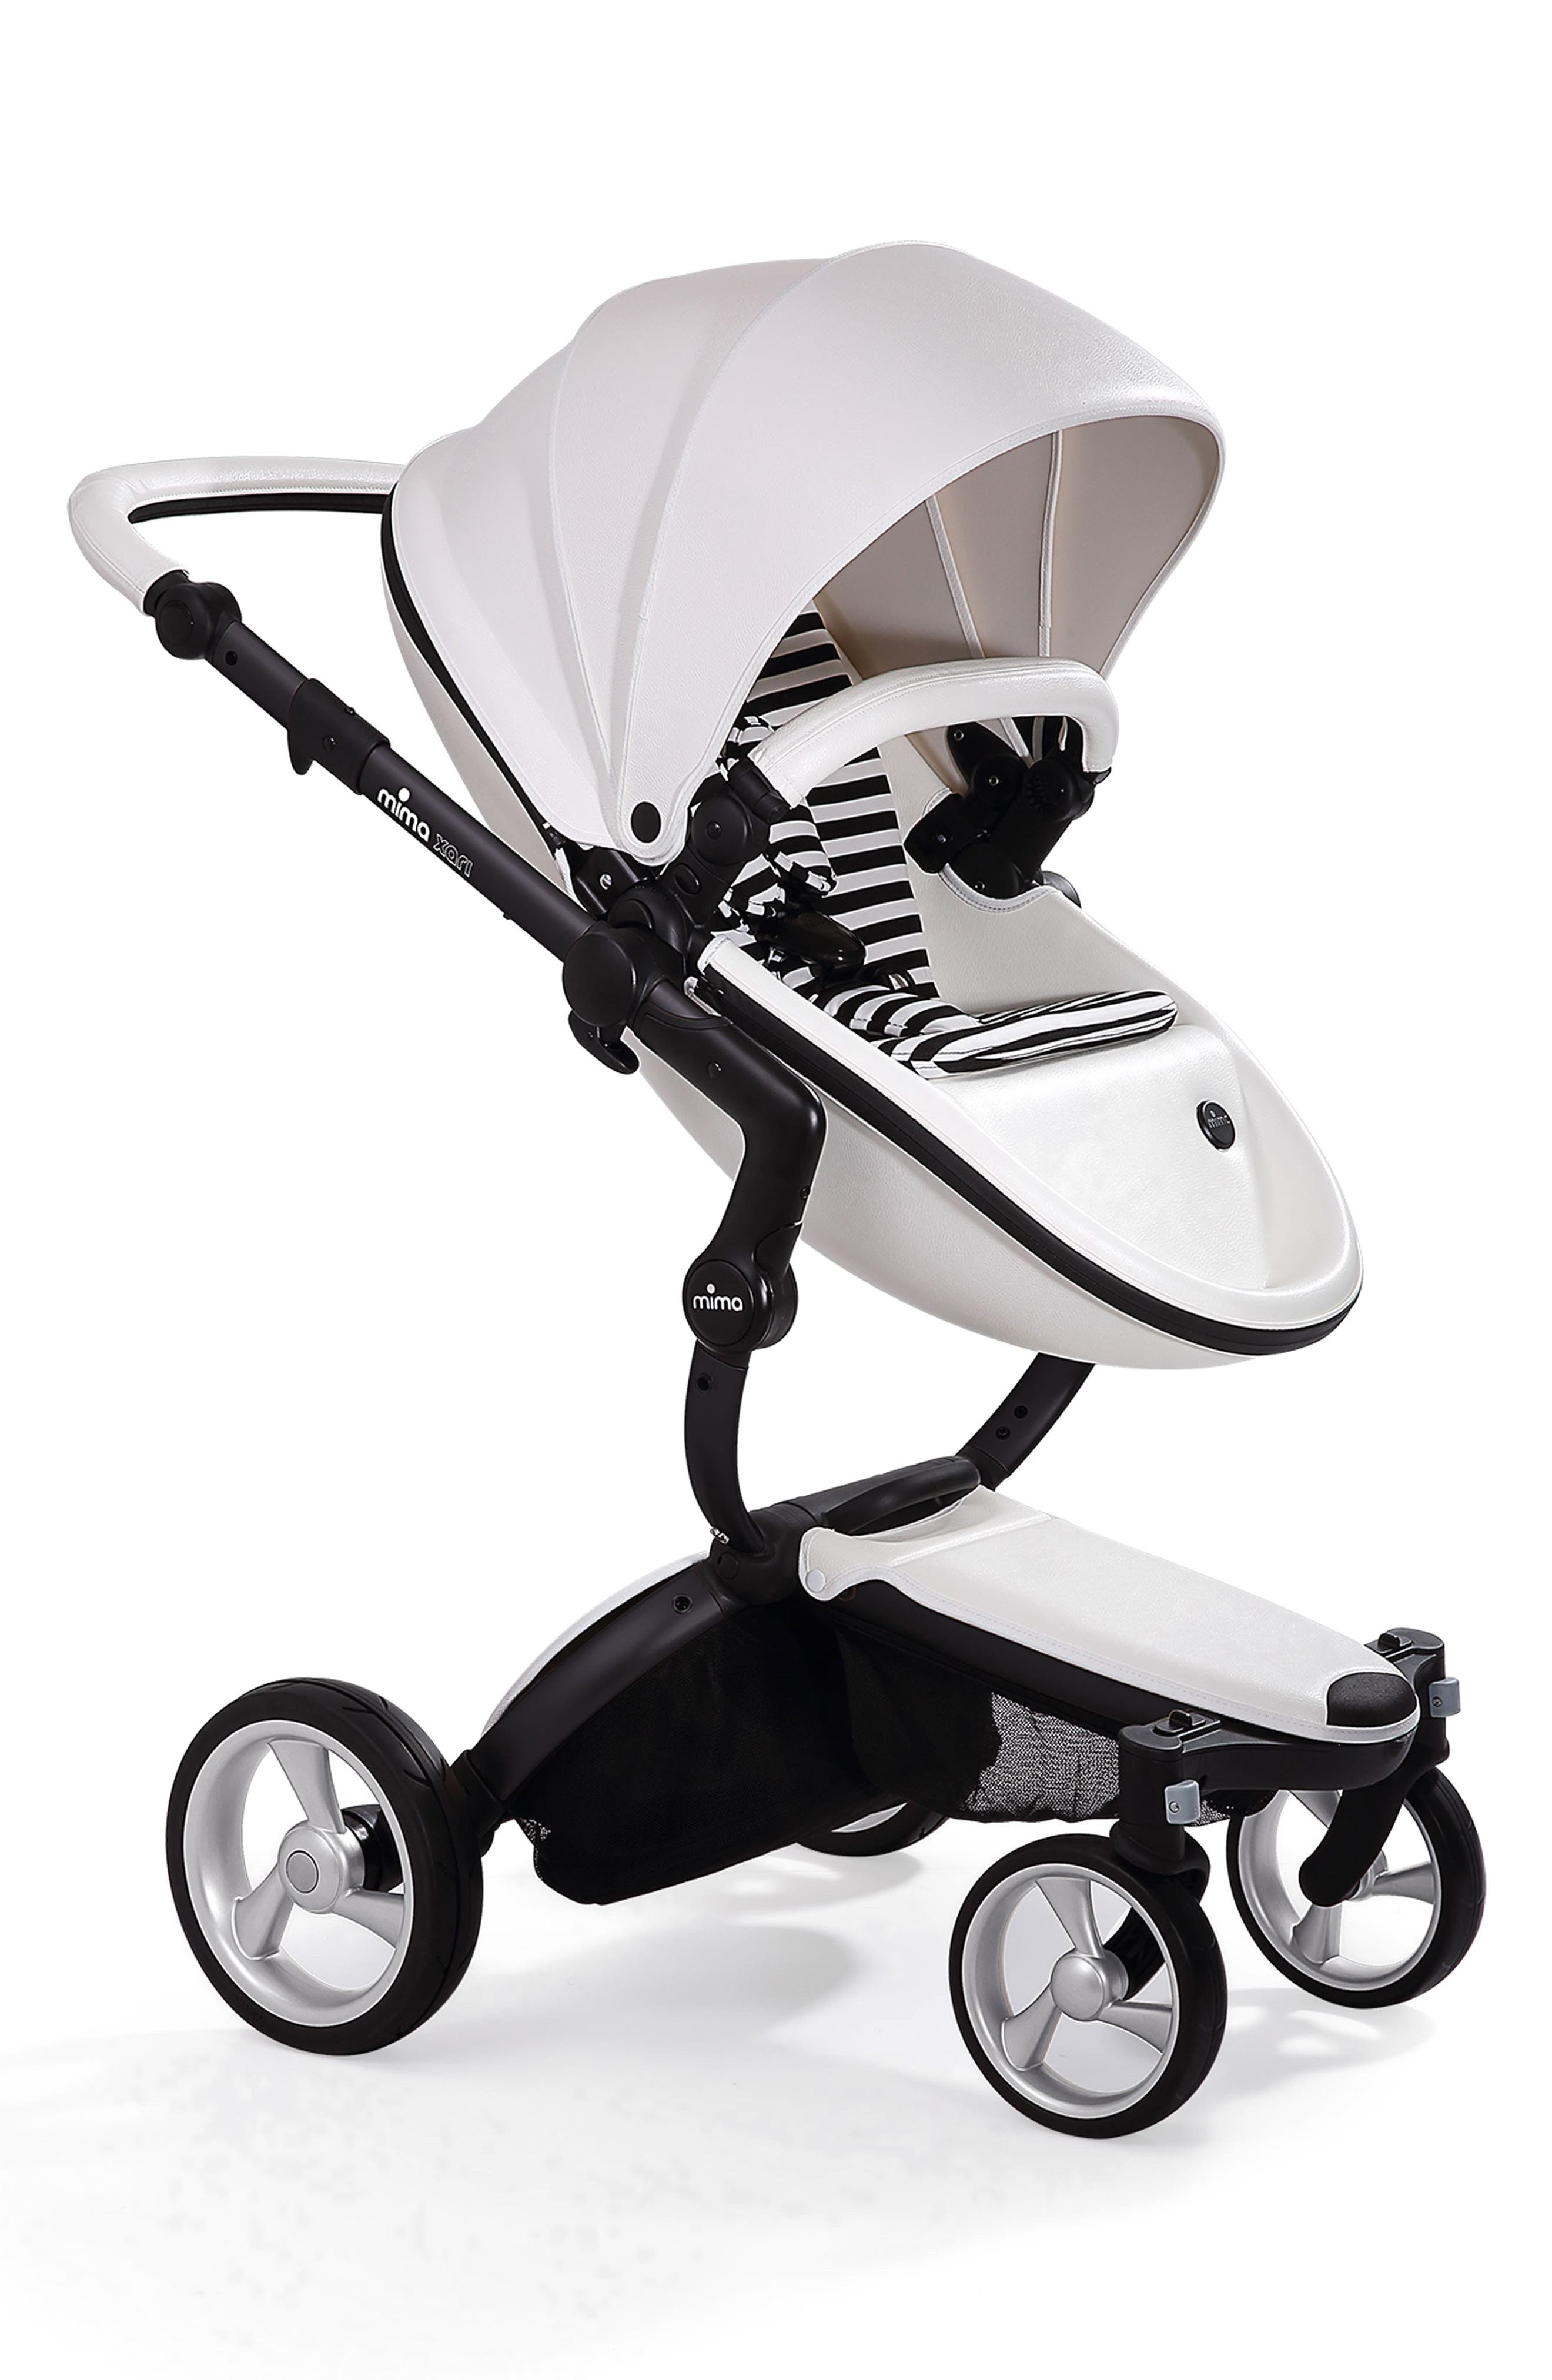 Xari Black Chassis Stroller with Reversible Reclining Seat & Carrycot, Main, color, SNOW WHITE/ BLACK AND WHITE